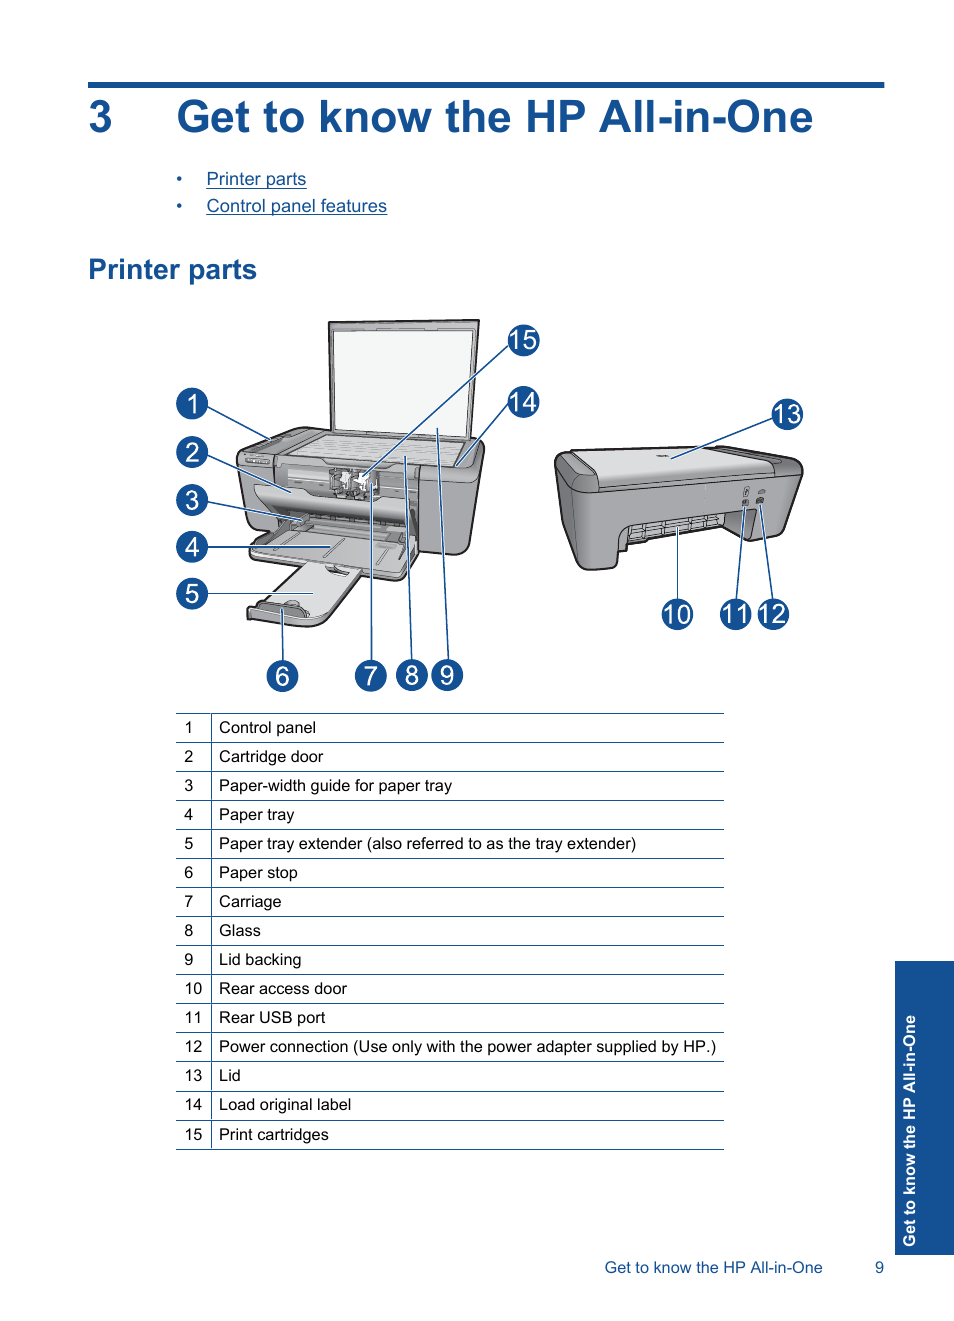 Get to know the hp all-in-one, Printer parts, 3 get